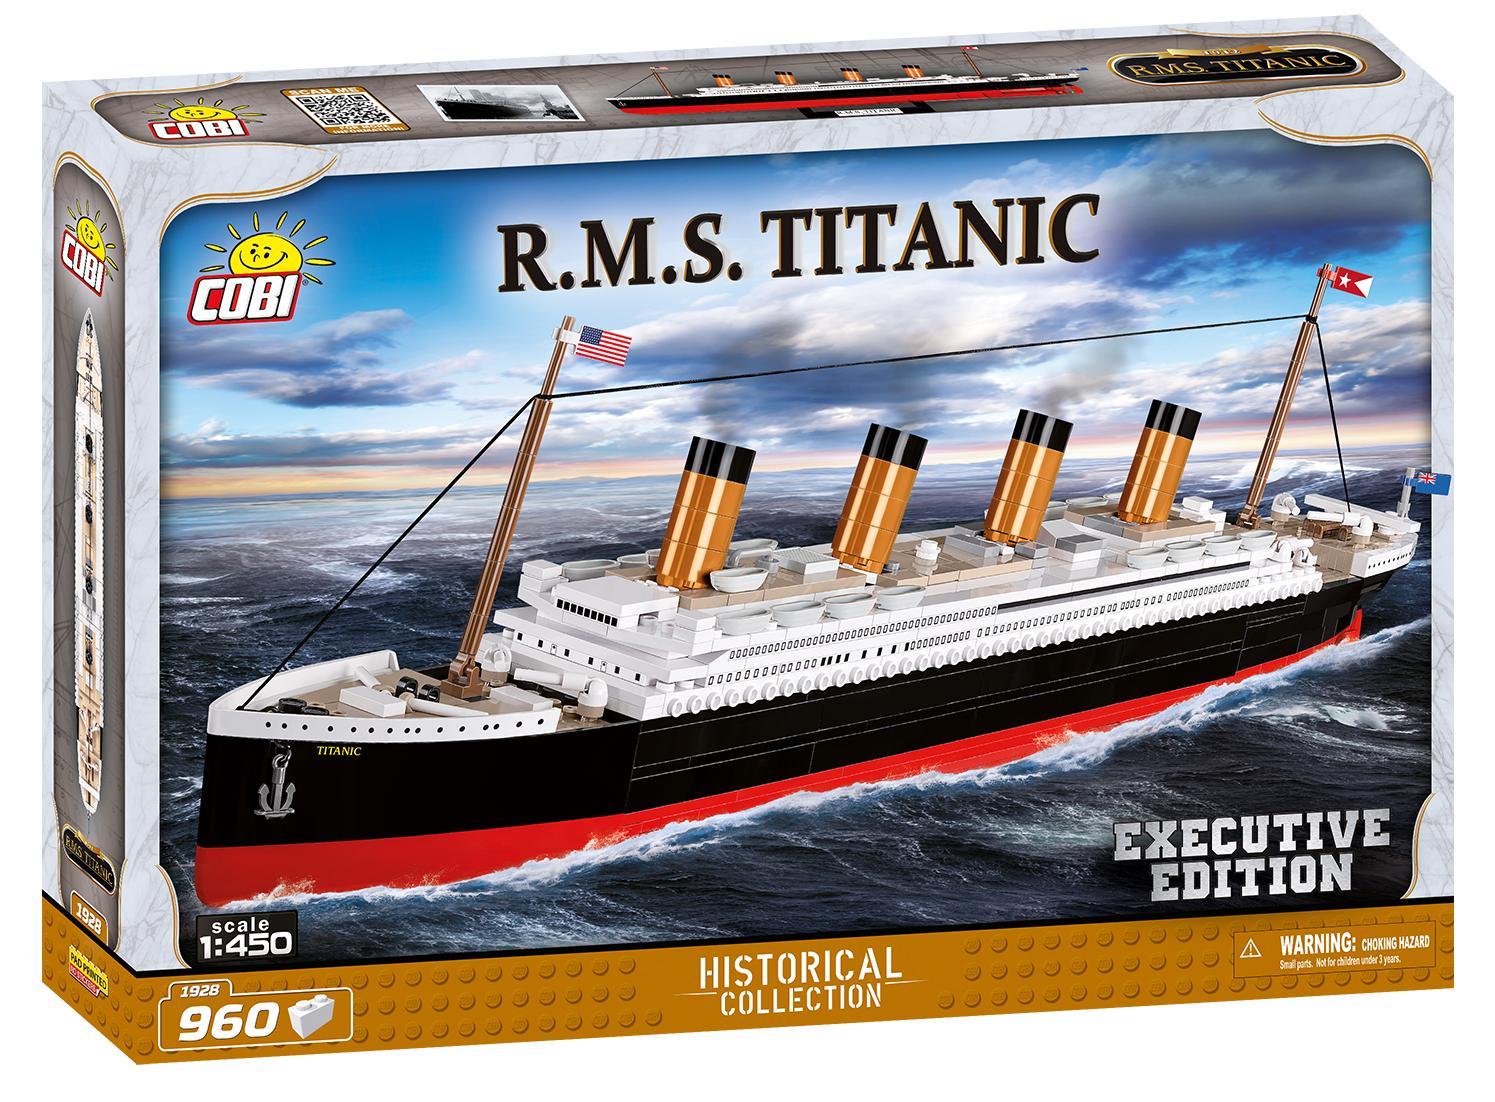 Cobi 1928 Titanic Executive Edition Pad printed -no Stickers